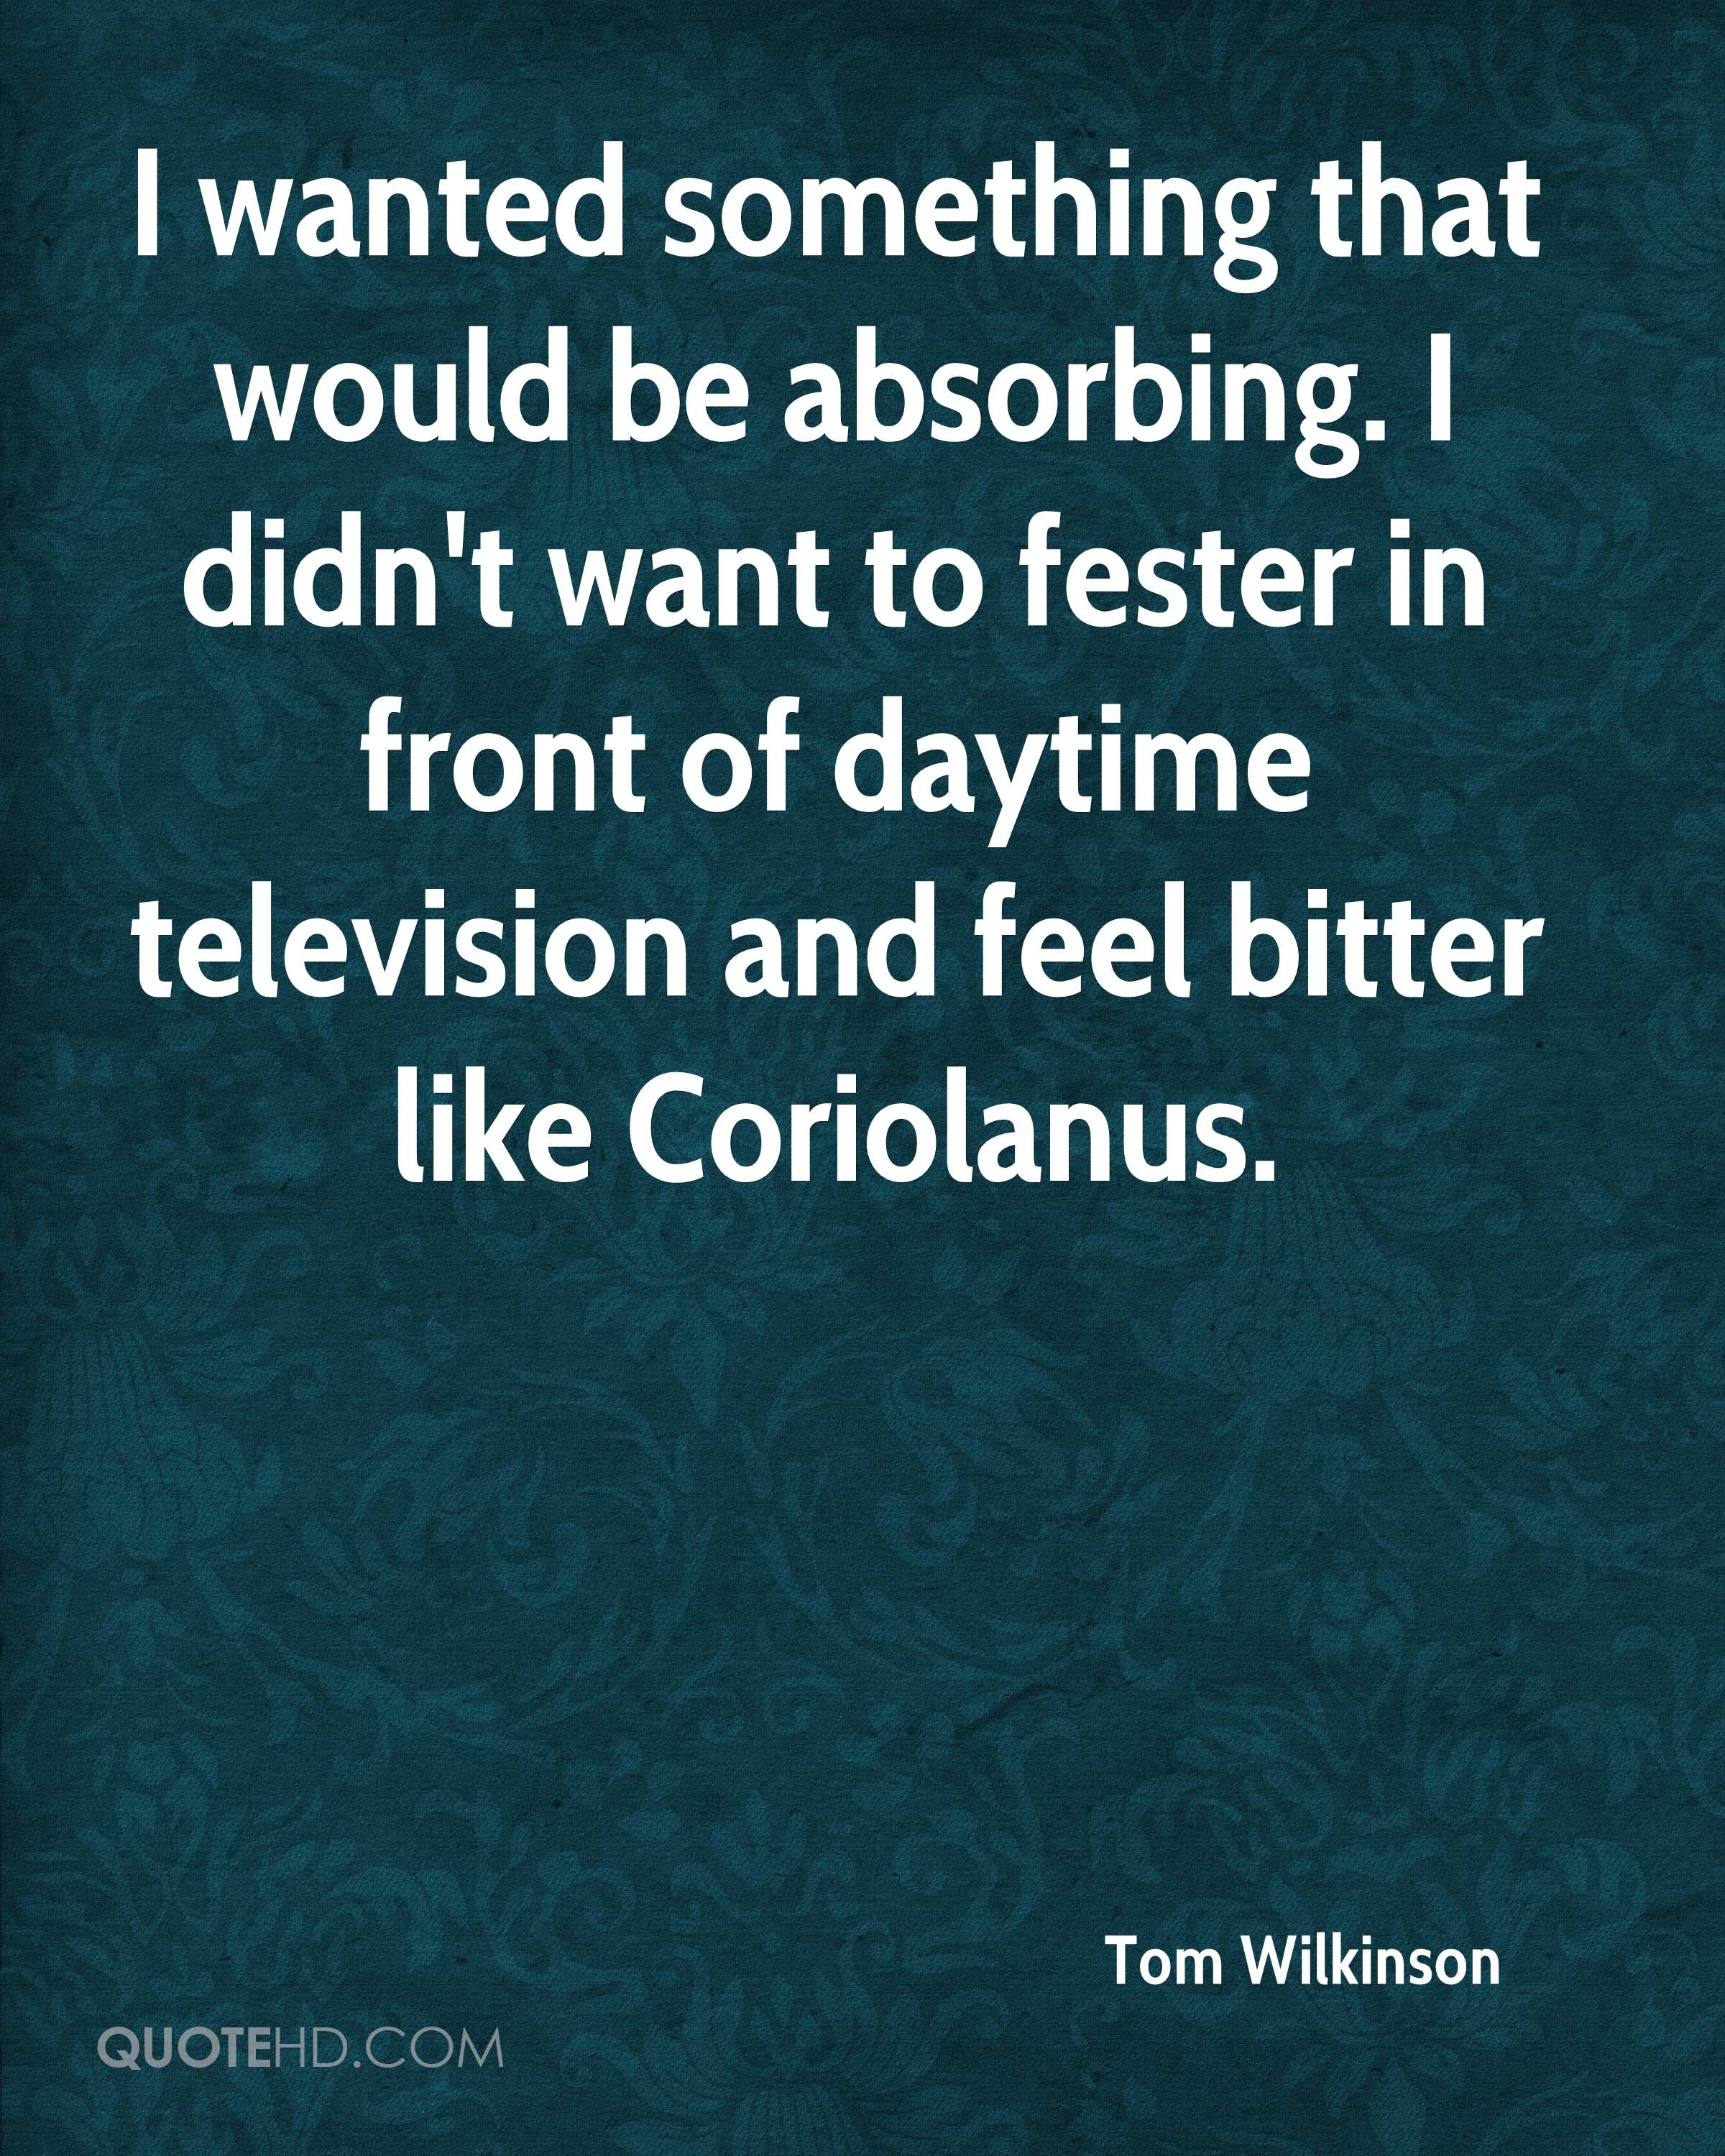 I wanted something that would be absorbing. I didn't want to fester in front of daytime television and feel bitter like Coriolanus.